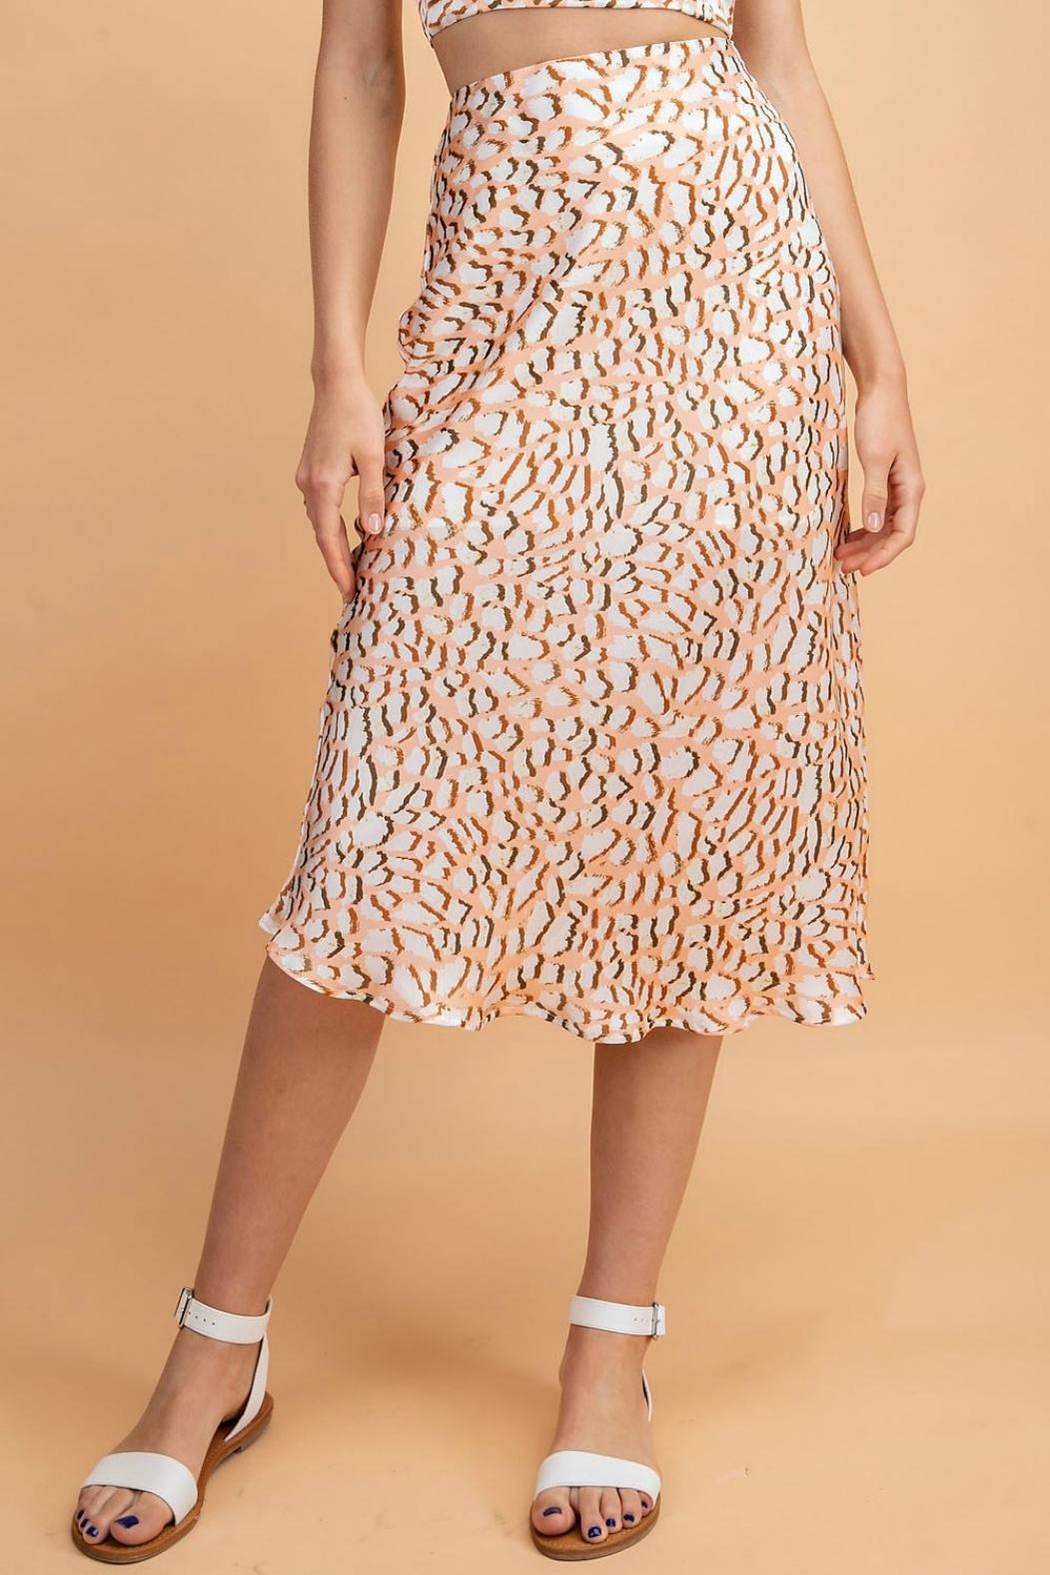 Pretty Little Things Peachy Leopard Skirt - Front Cropped Image